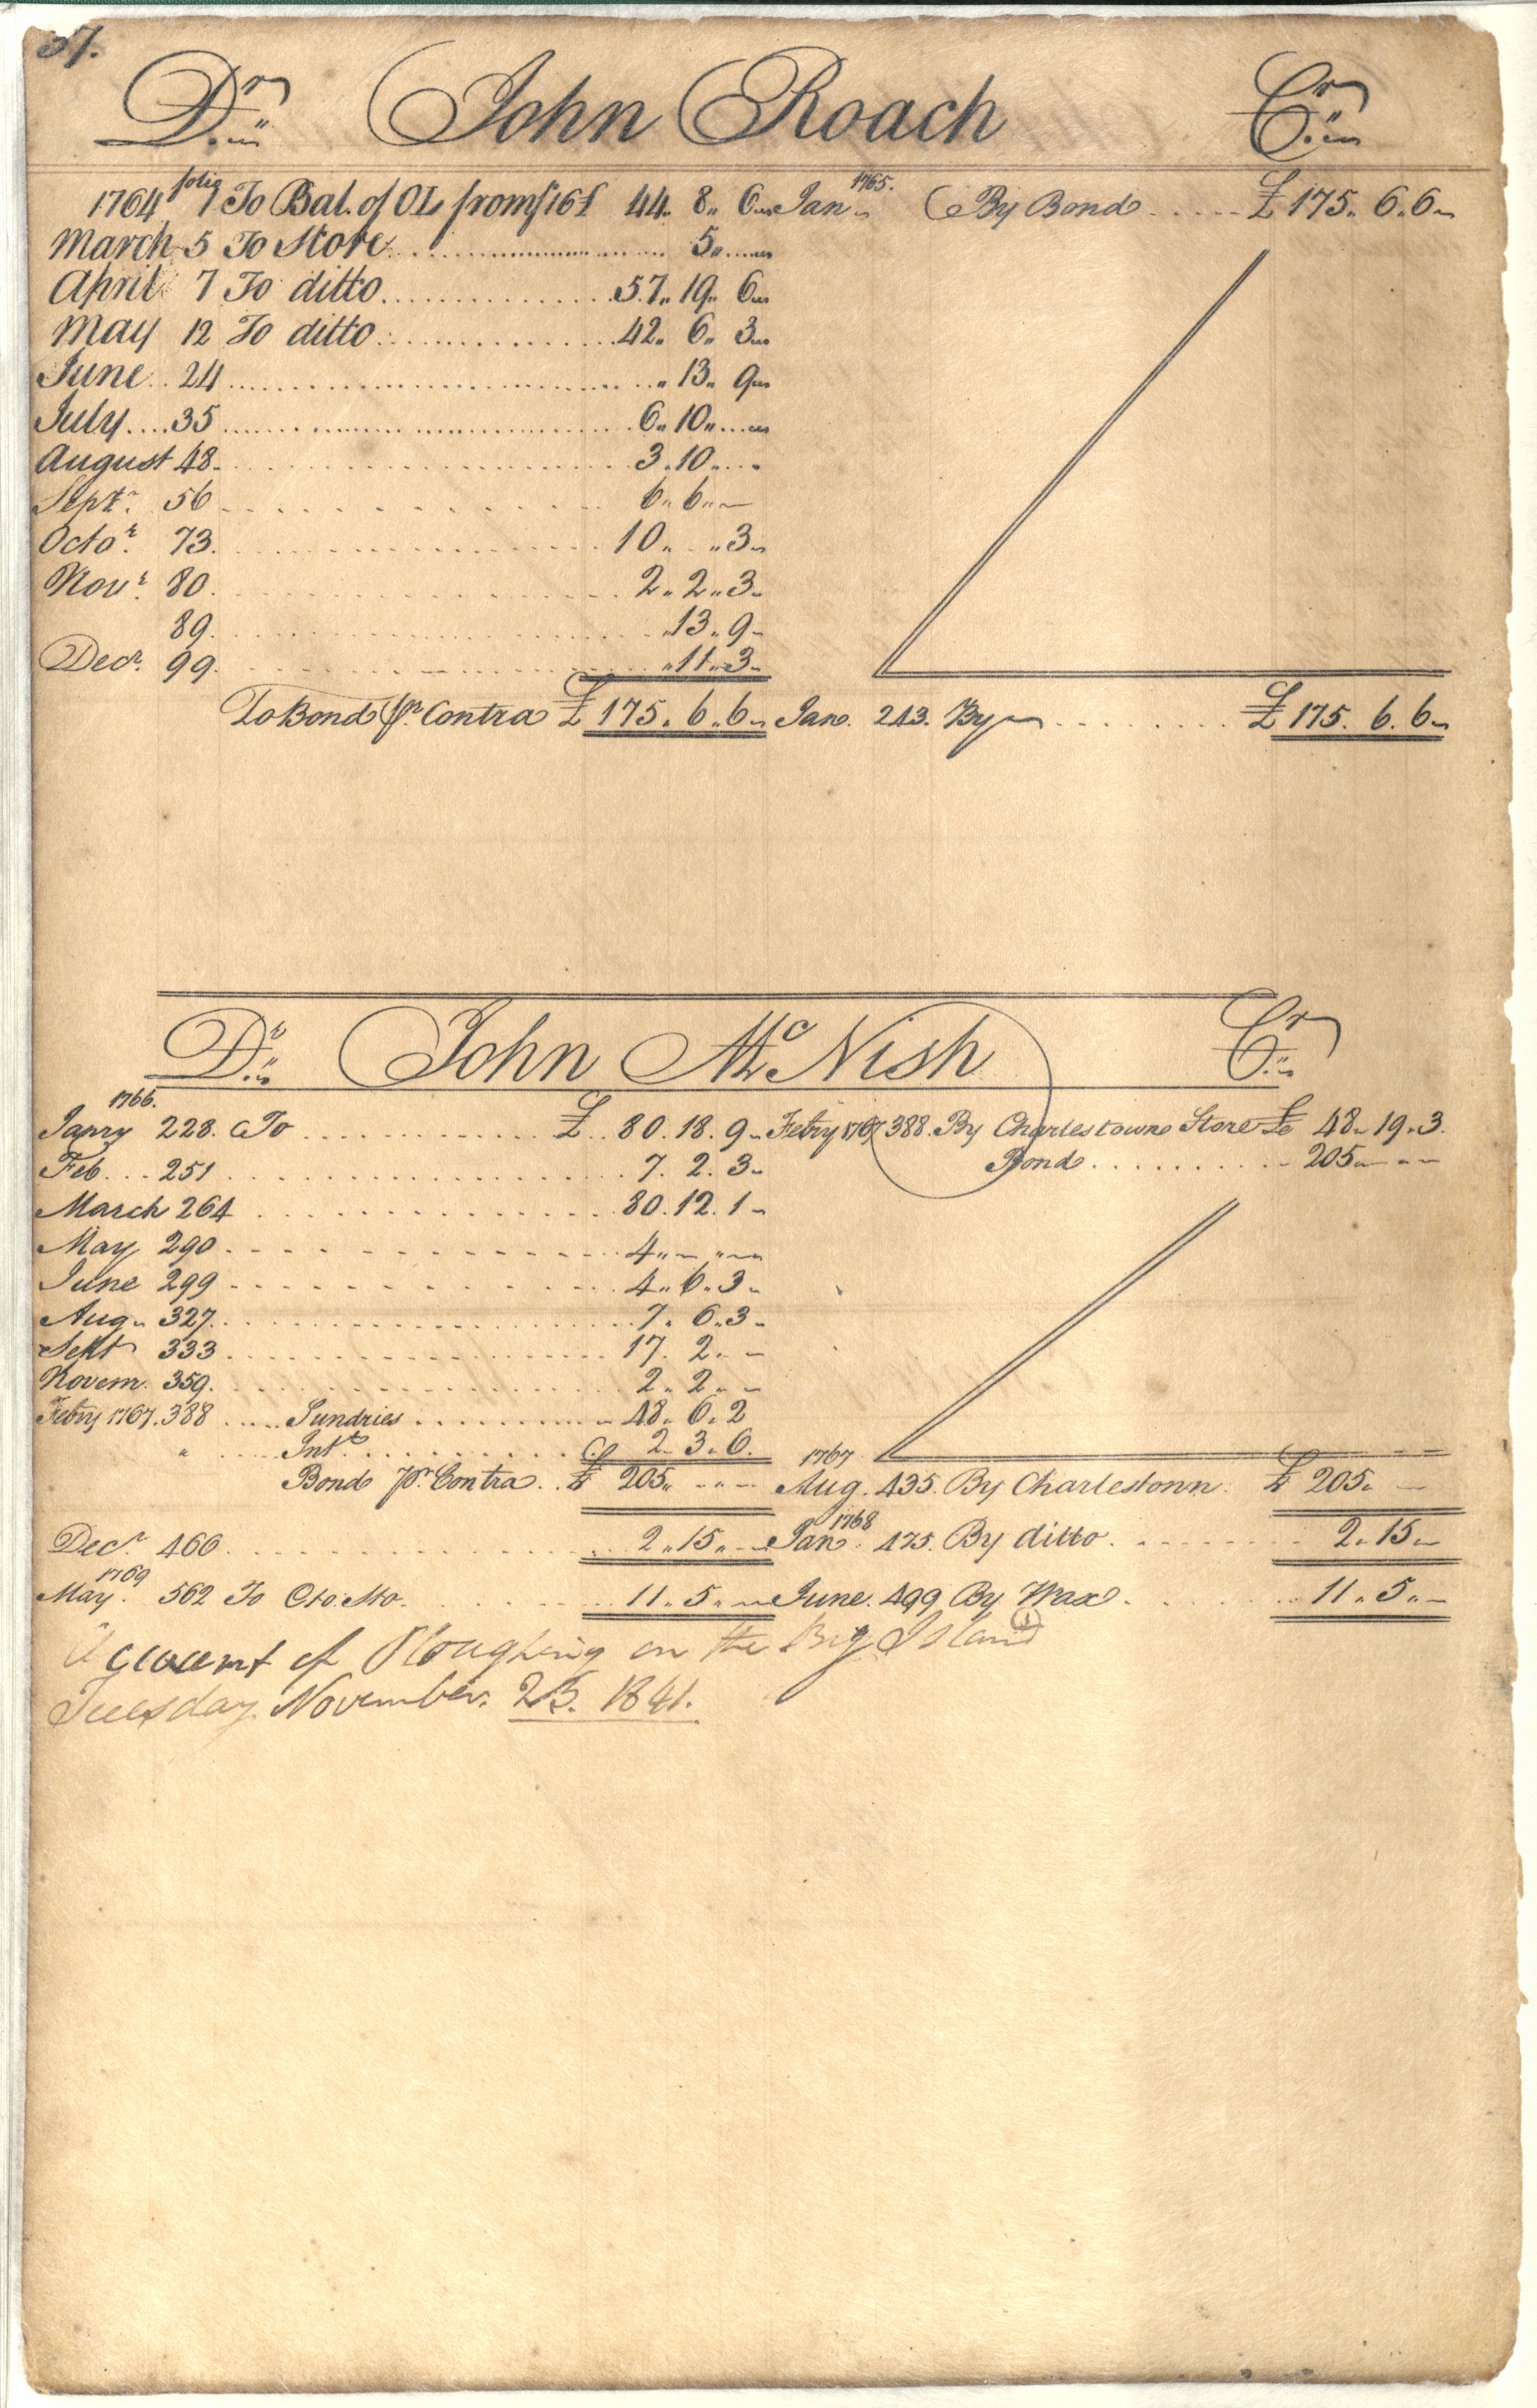 Plowden Weston's Business Ledger, page 37